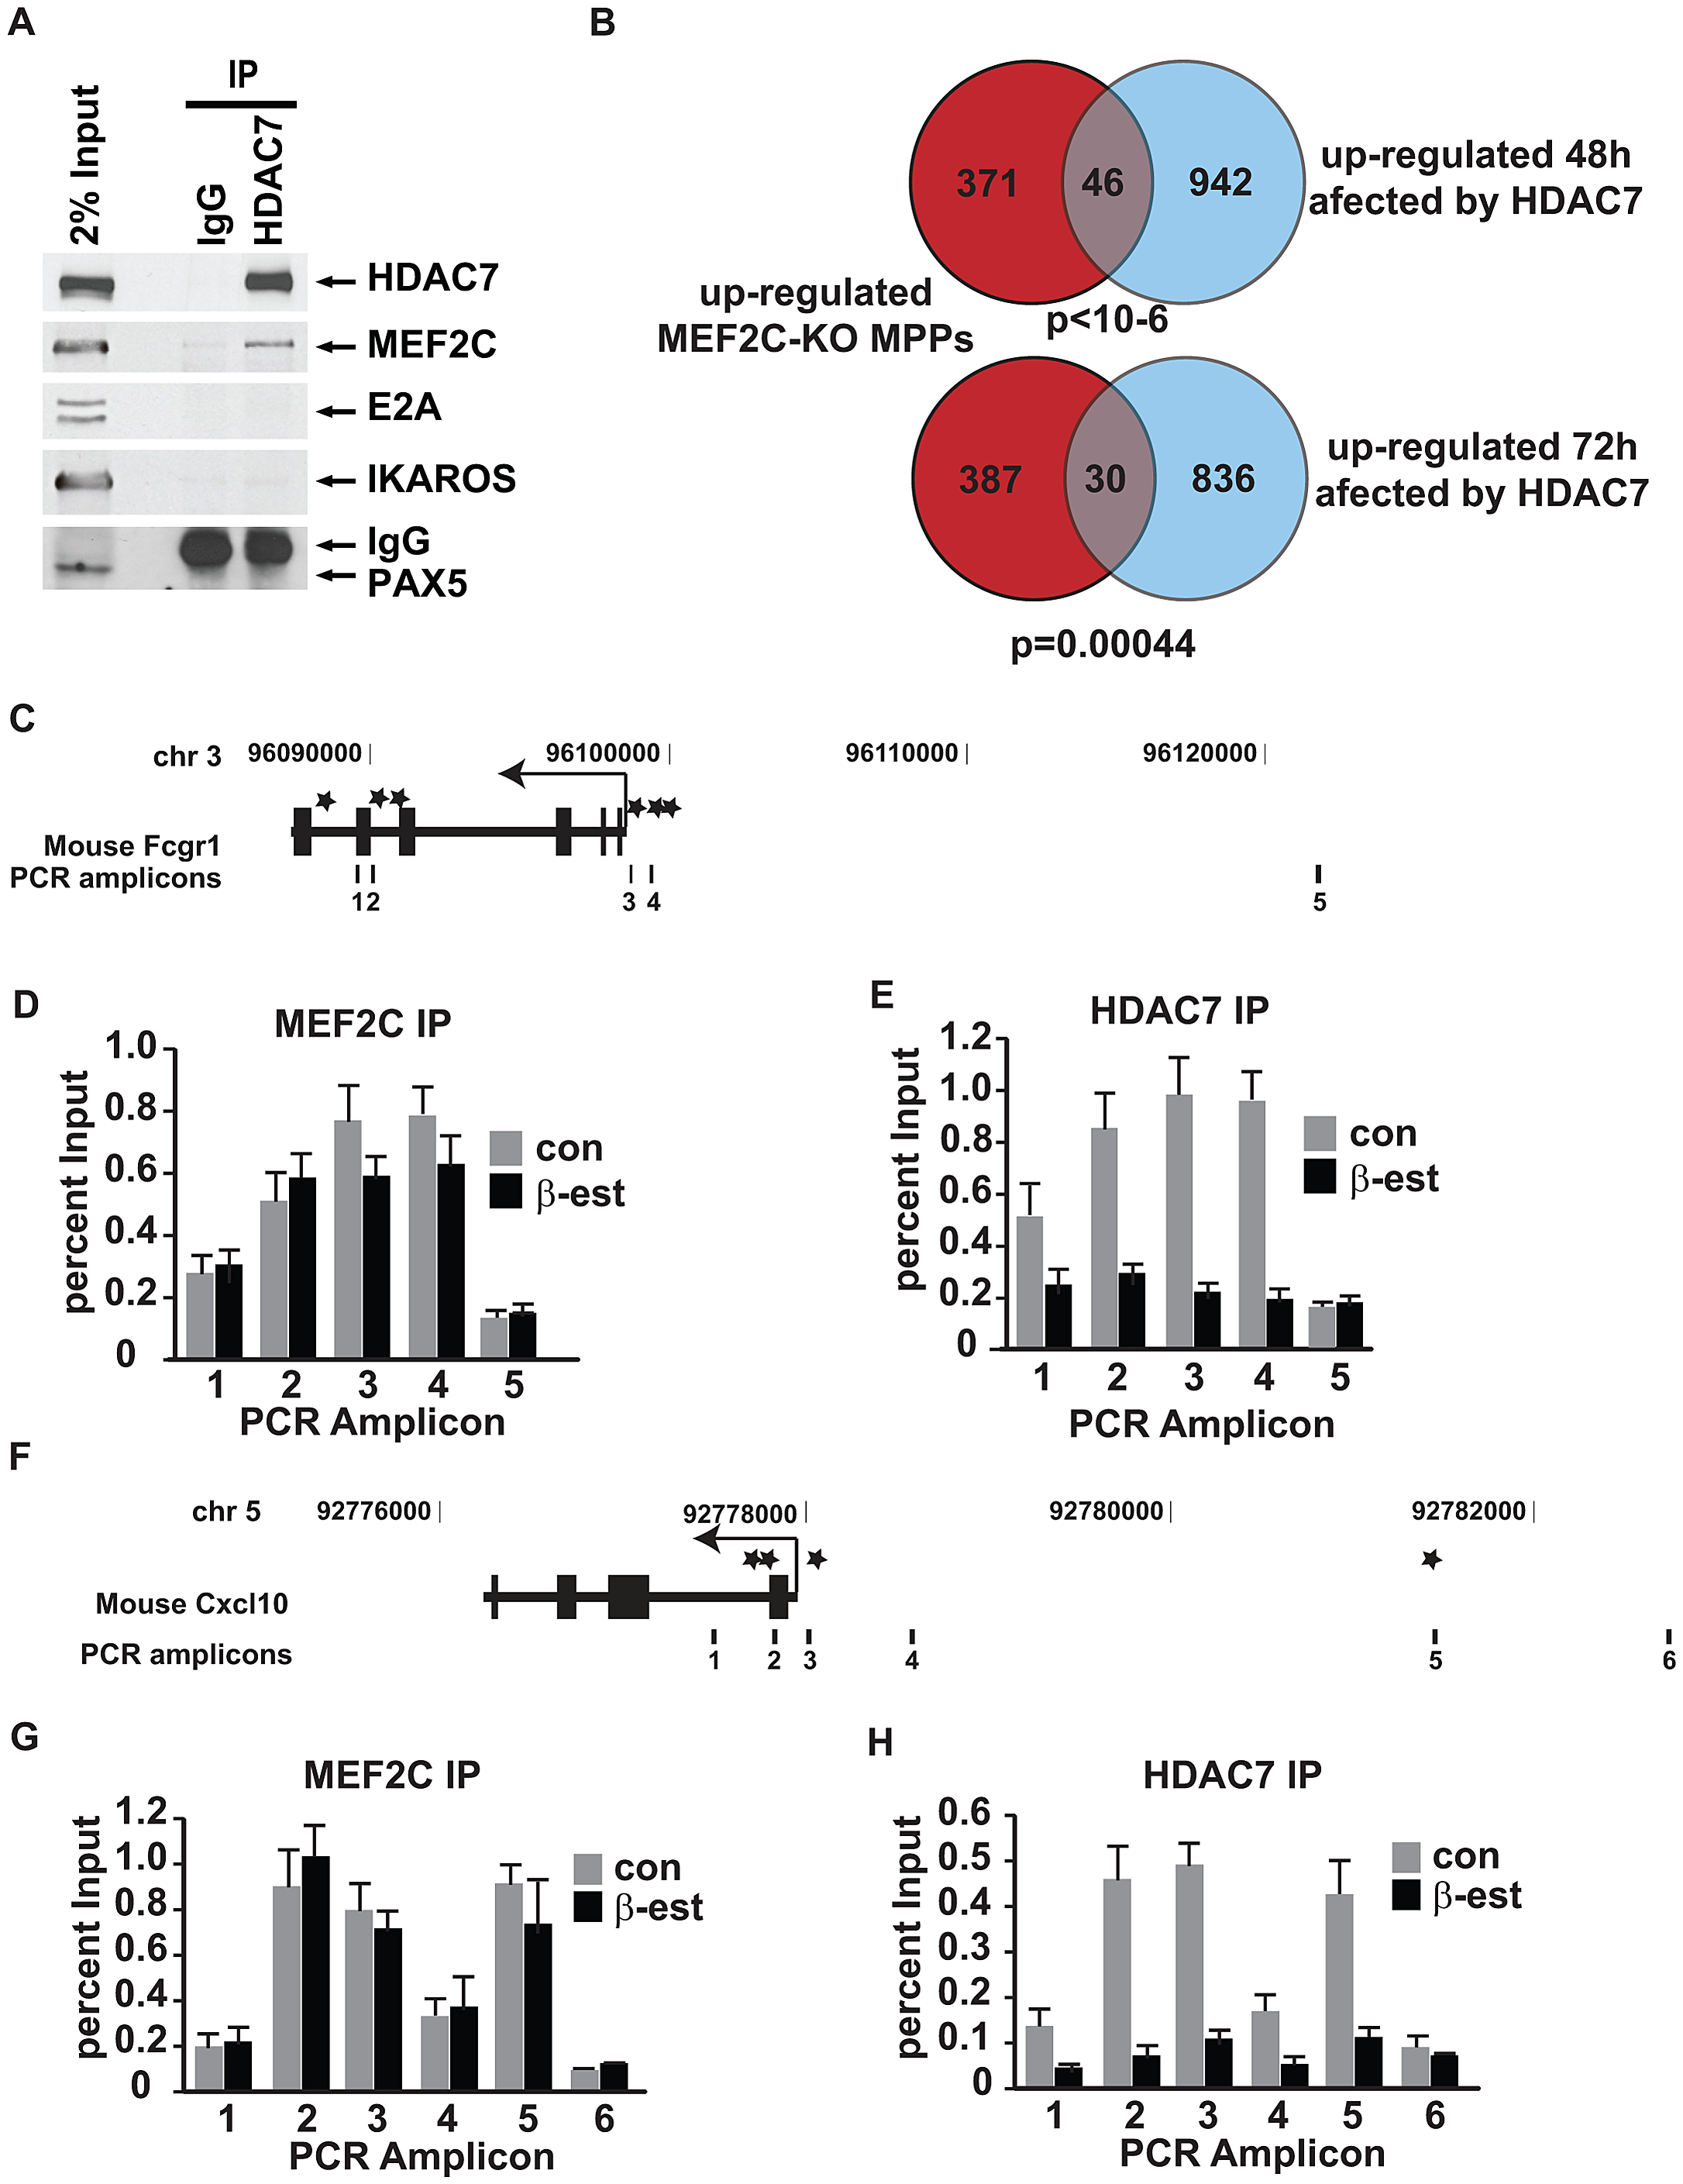 HDAC7 binds to the transcription factor MEF2C and is recruited to the promoter of key genes for macrophage function in pre-B cells.